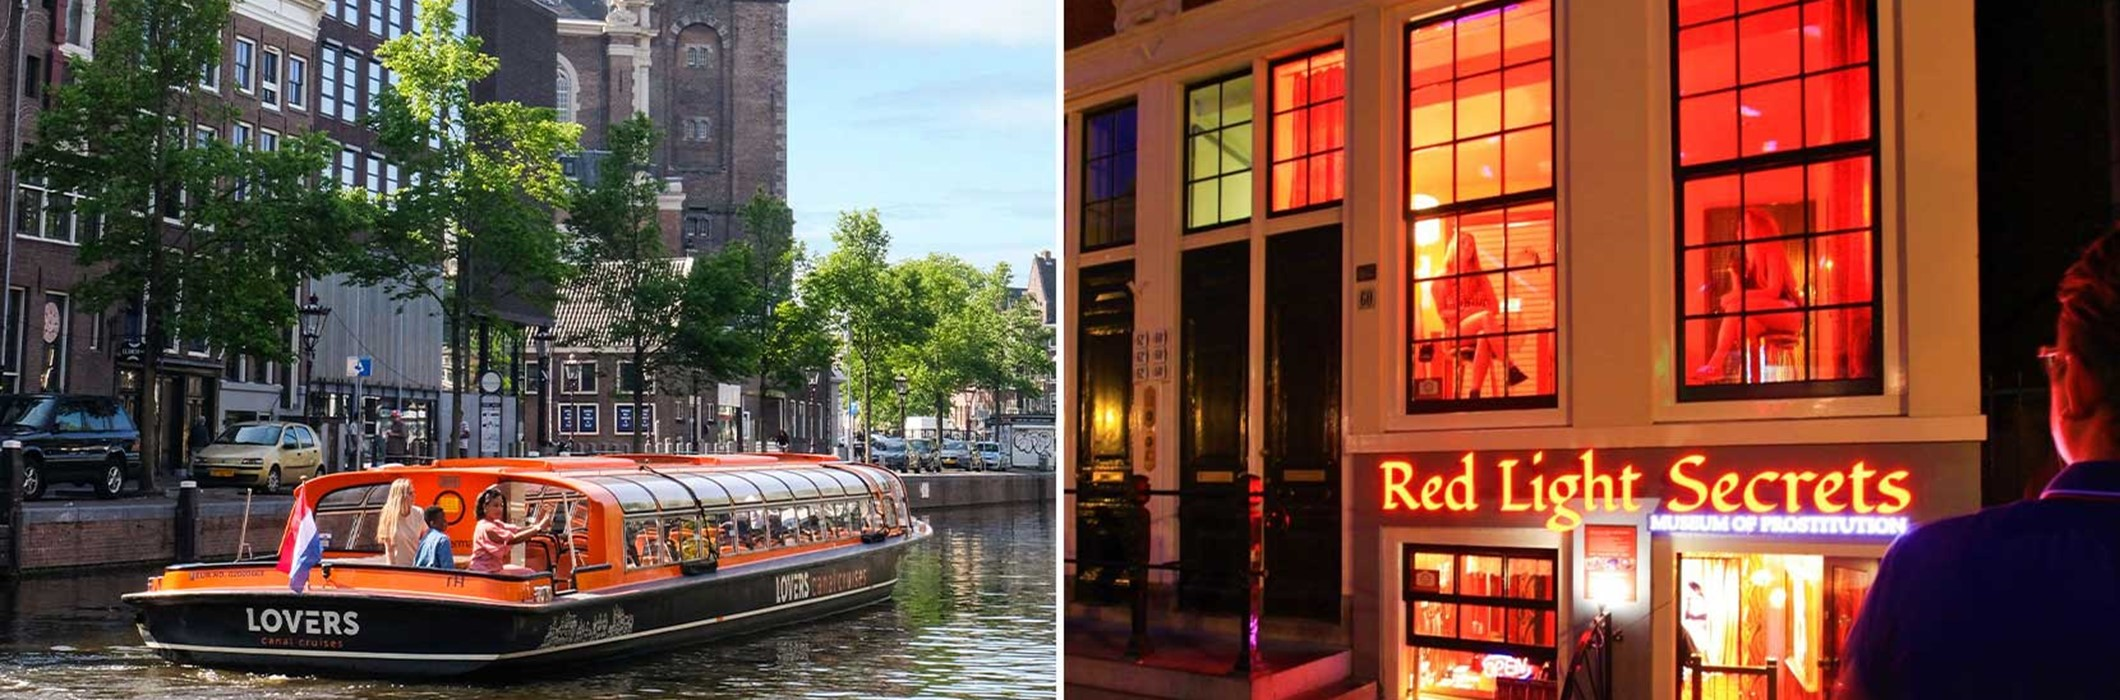 Red Light Secrets + Amsterdam Canal Cruise